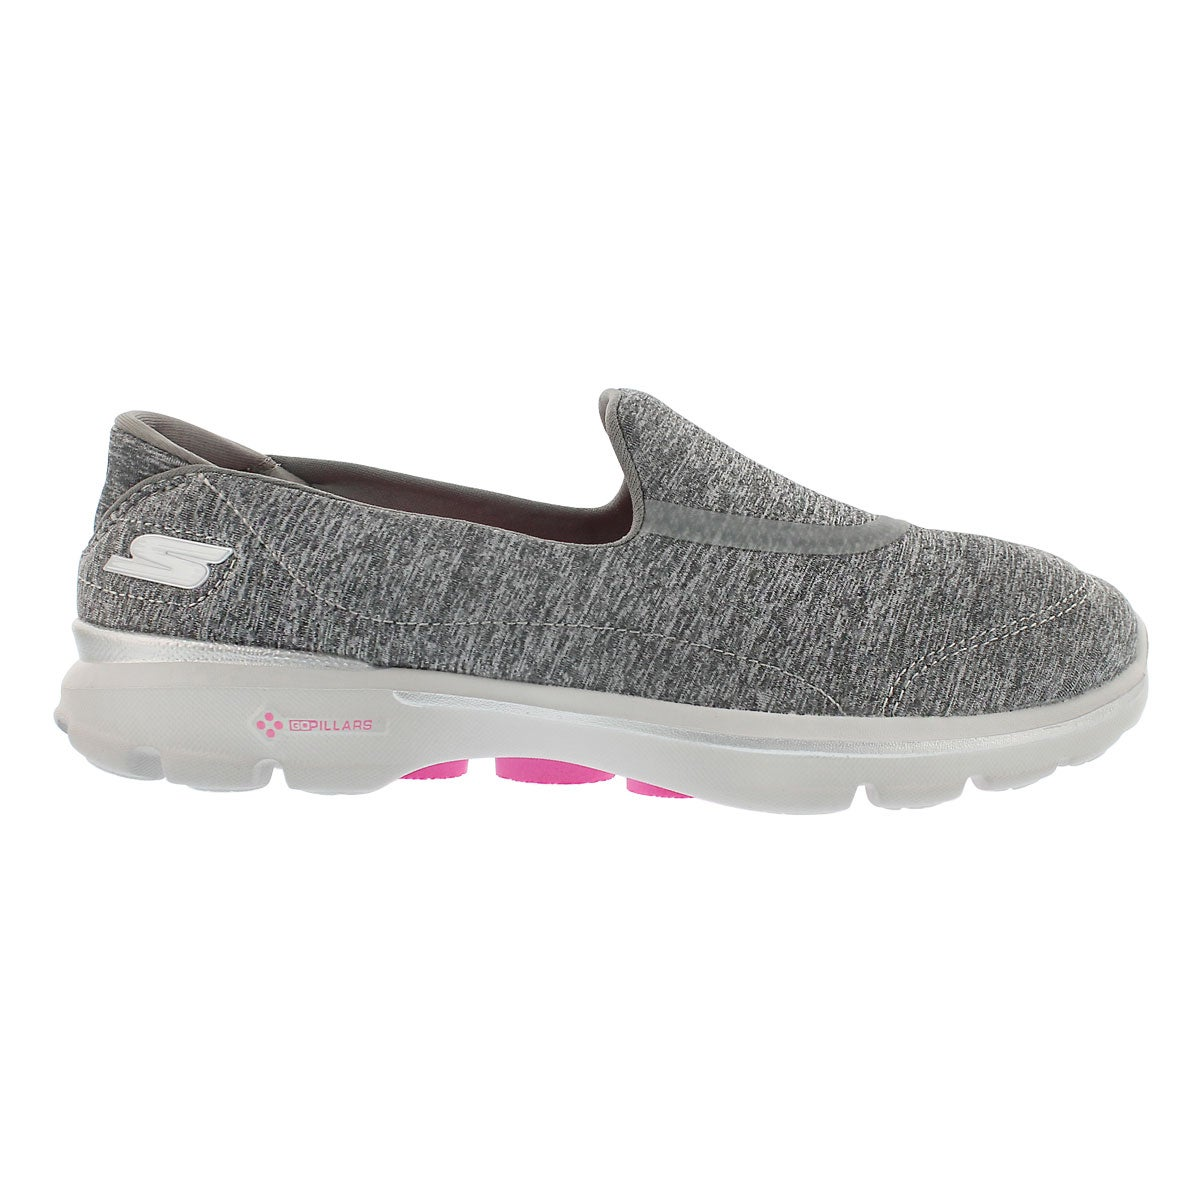 Skechers Slip On Shoes Canada